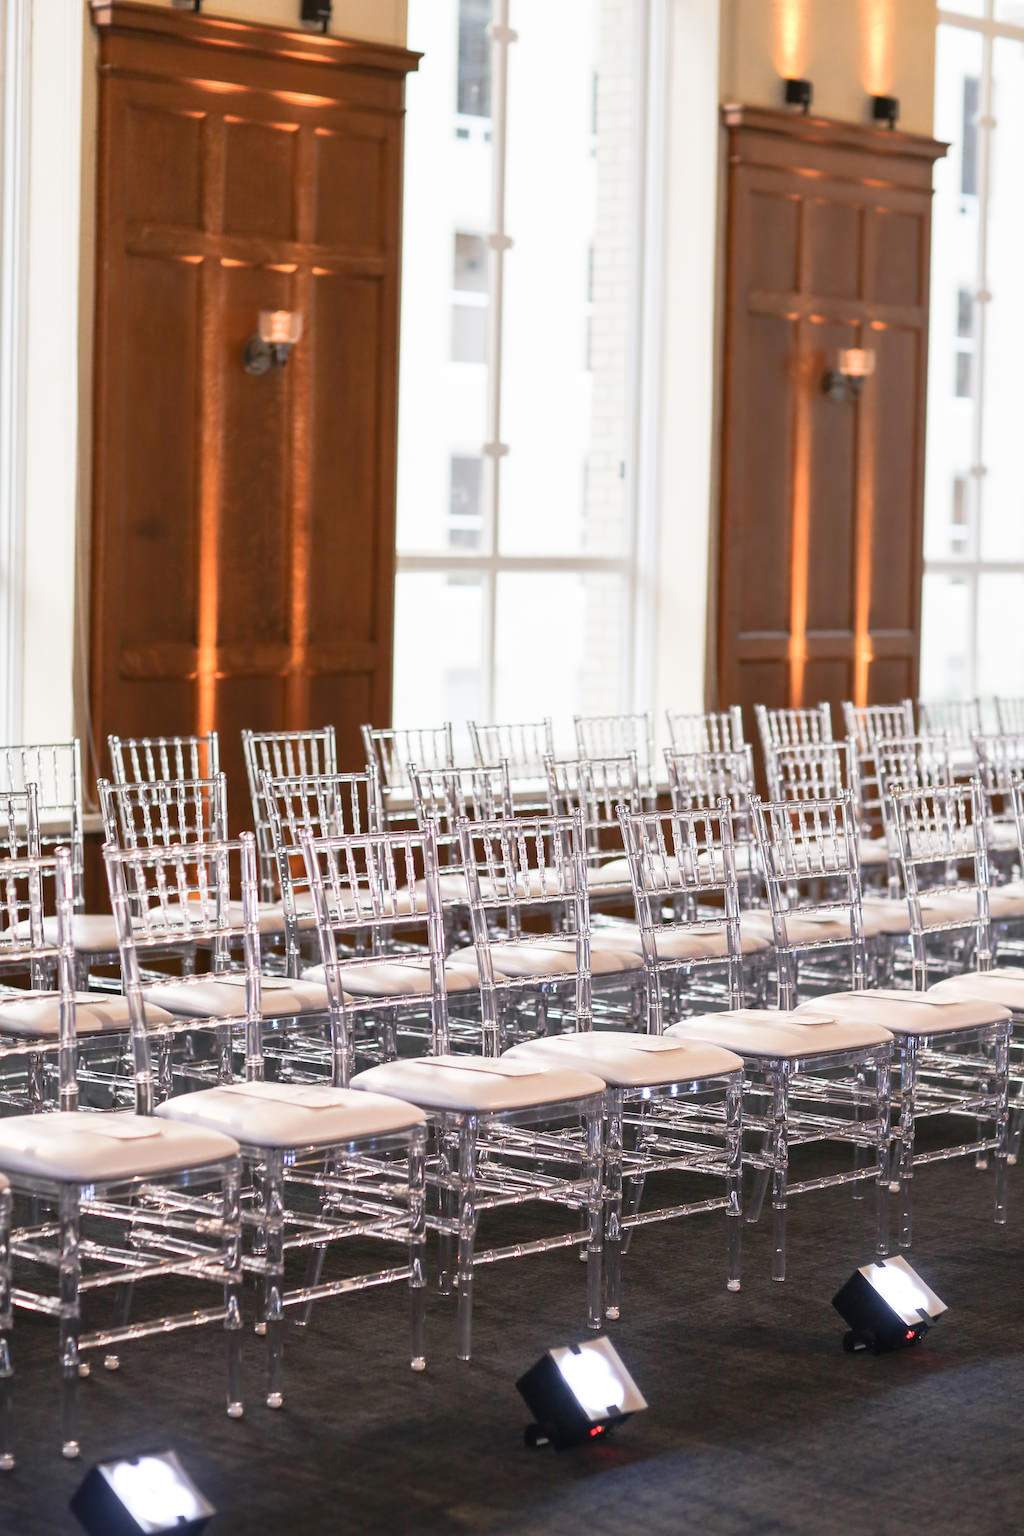 Clear Acrylic Chiavari Chairs from Kate Ryan Rentals   Marry Me Tampa Bay and Isabel O'Neil Bridal Fashion Runway Show 2018   Tampa Wedding Photographer Lifelong Photography Studios